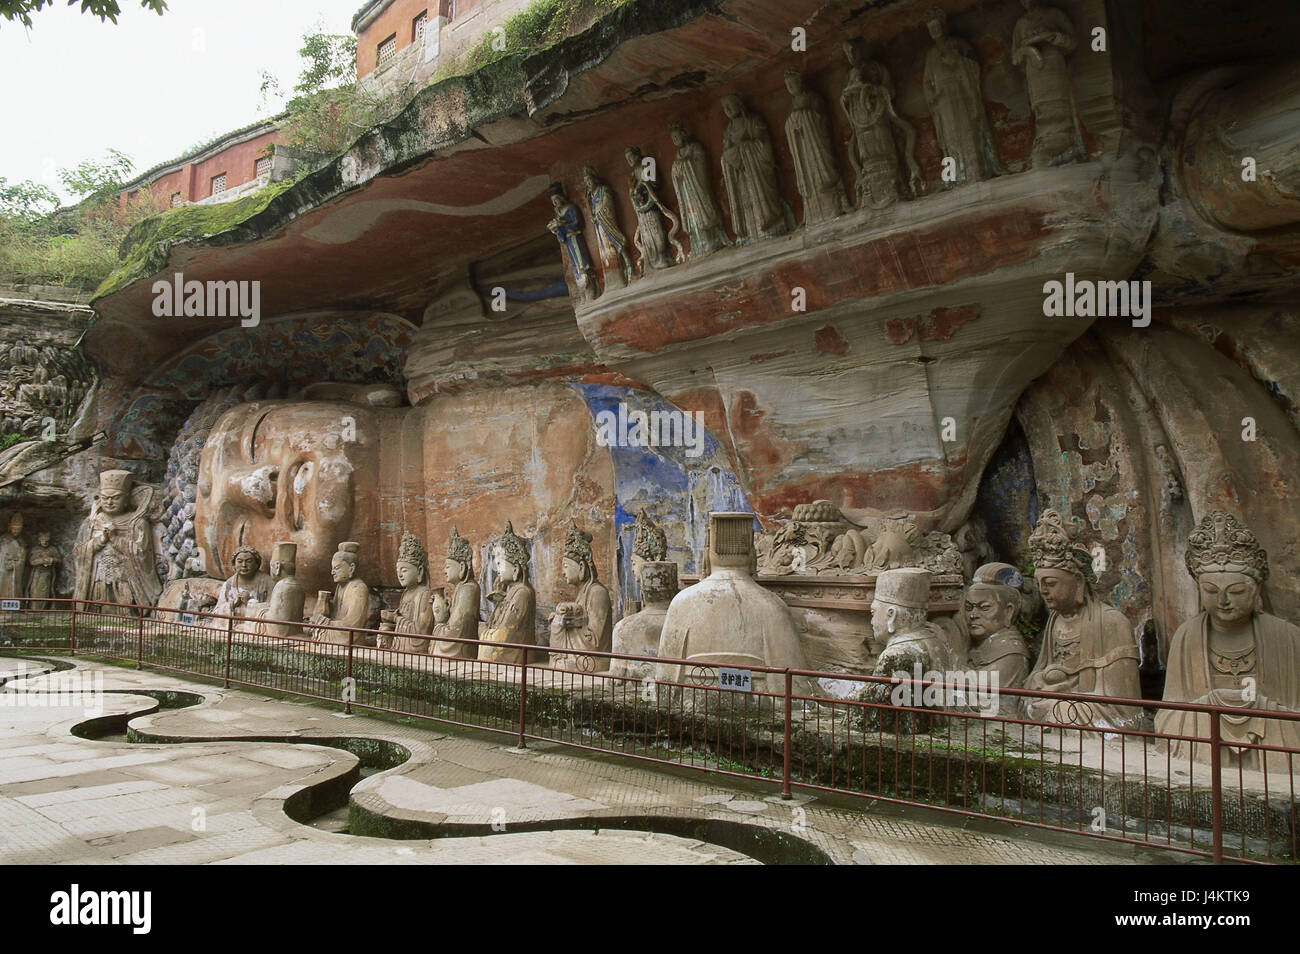 China, Chongqing Province, In addition, Buddha-Statue, lying Asia, Eastern Asia, place of interest, Buddha, statue, - Stock Image